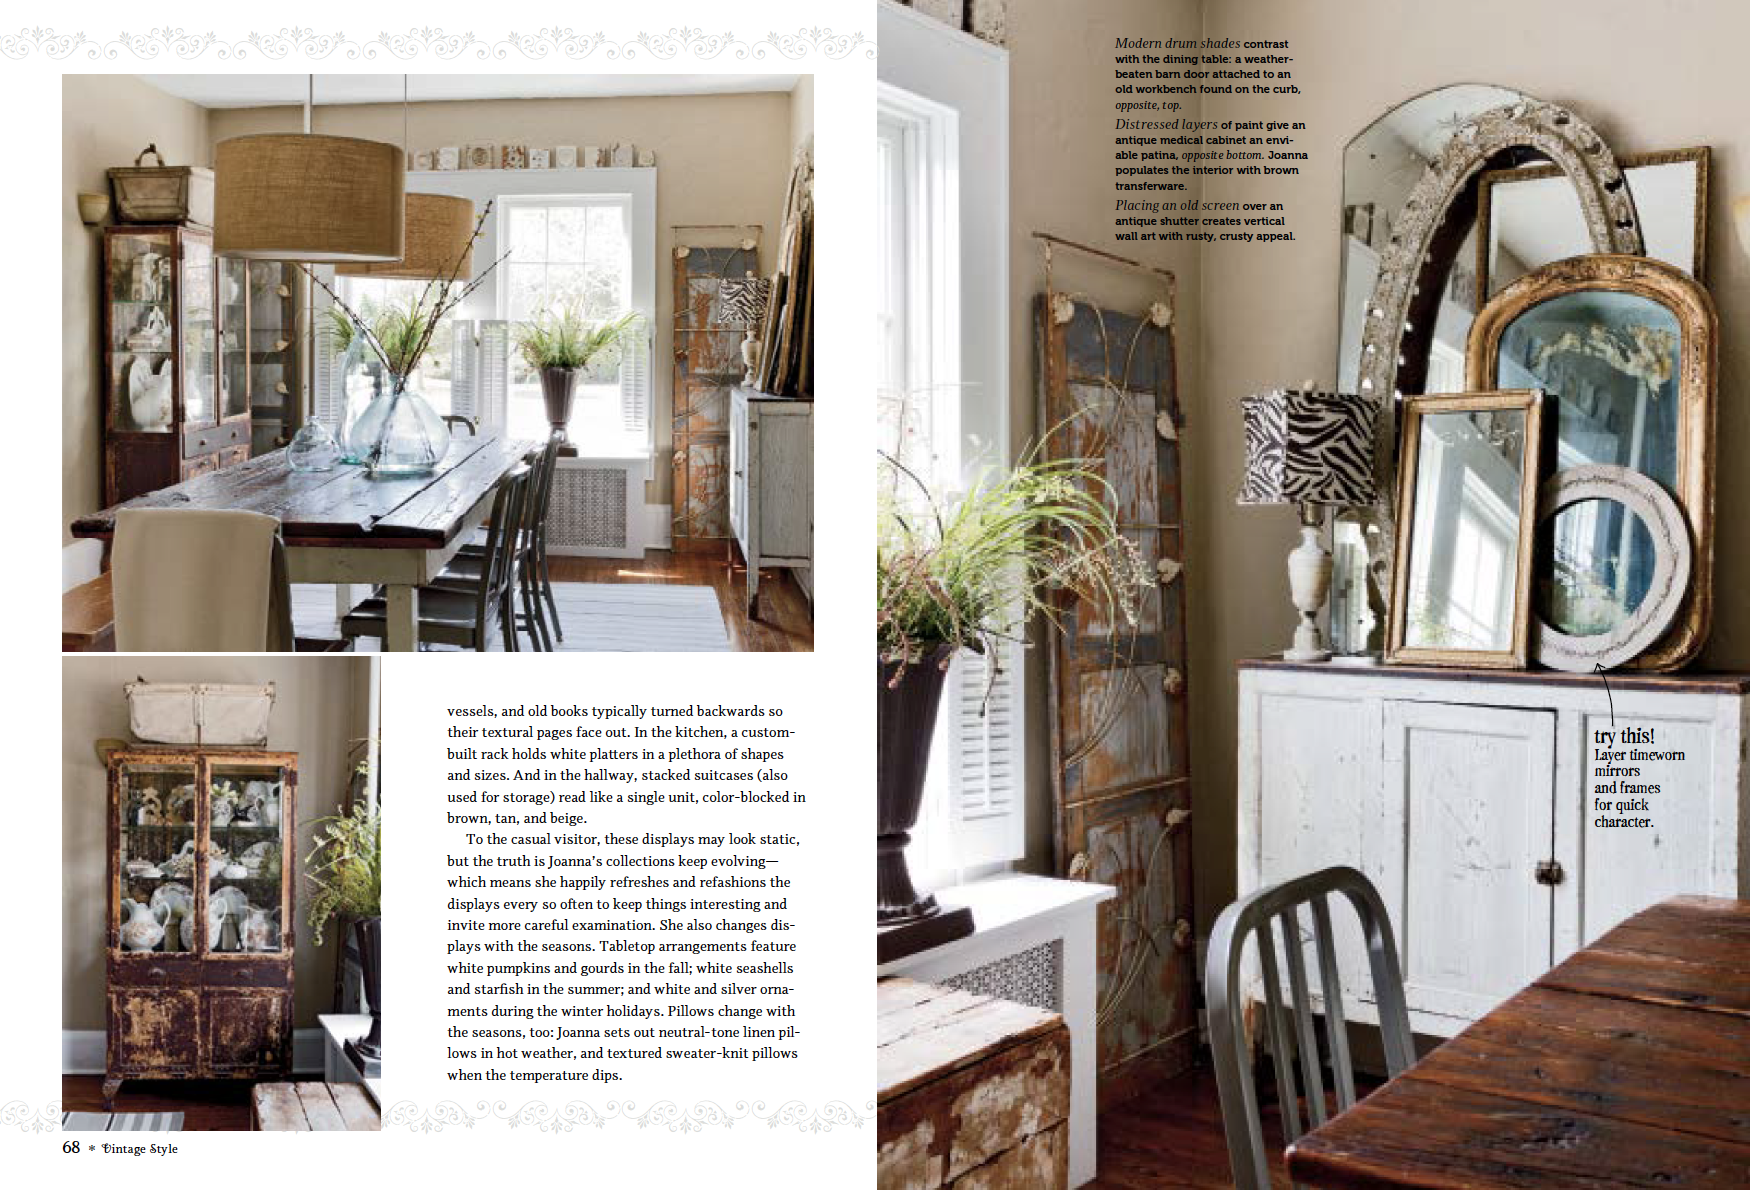 vintage-style-eclectic-dining-room-interior-photography.png